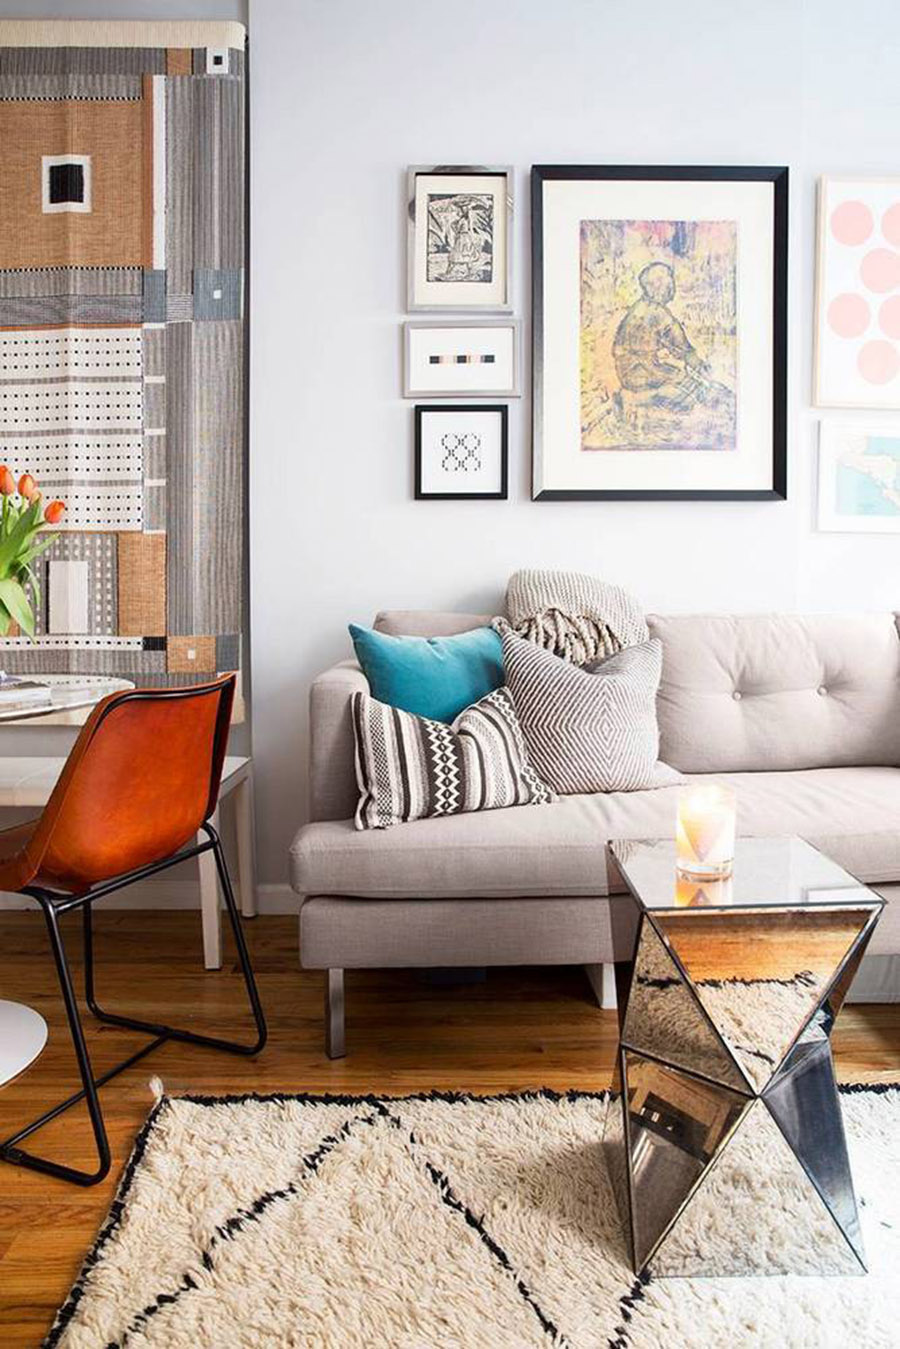 Inspiration for how to live and work in a small space for Small apartment inspiration